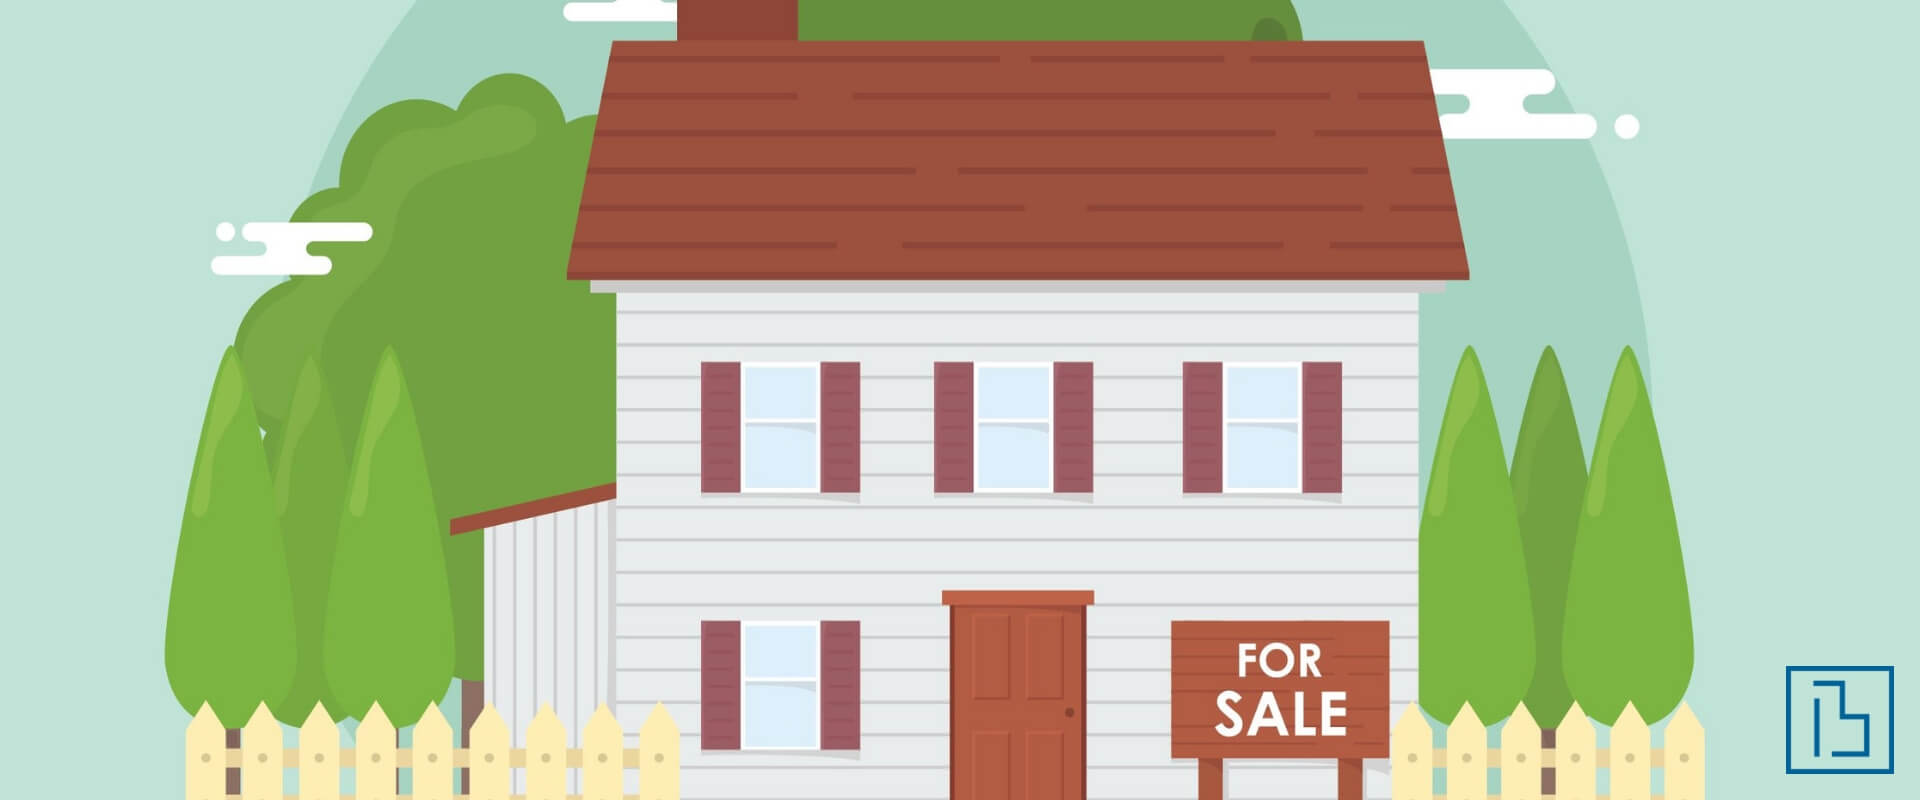 How to Sell Your Home Fast - Beachworks LLC